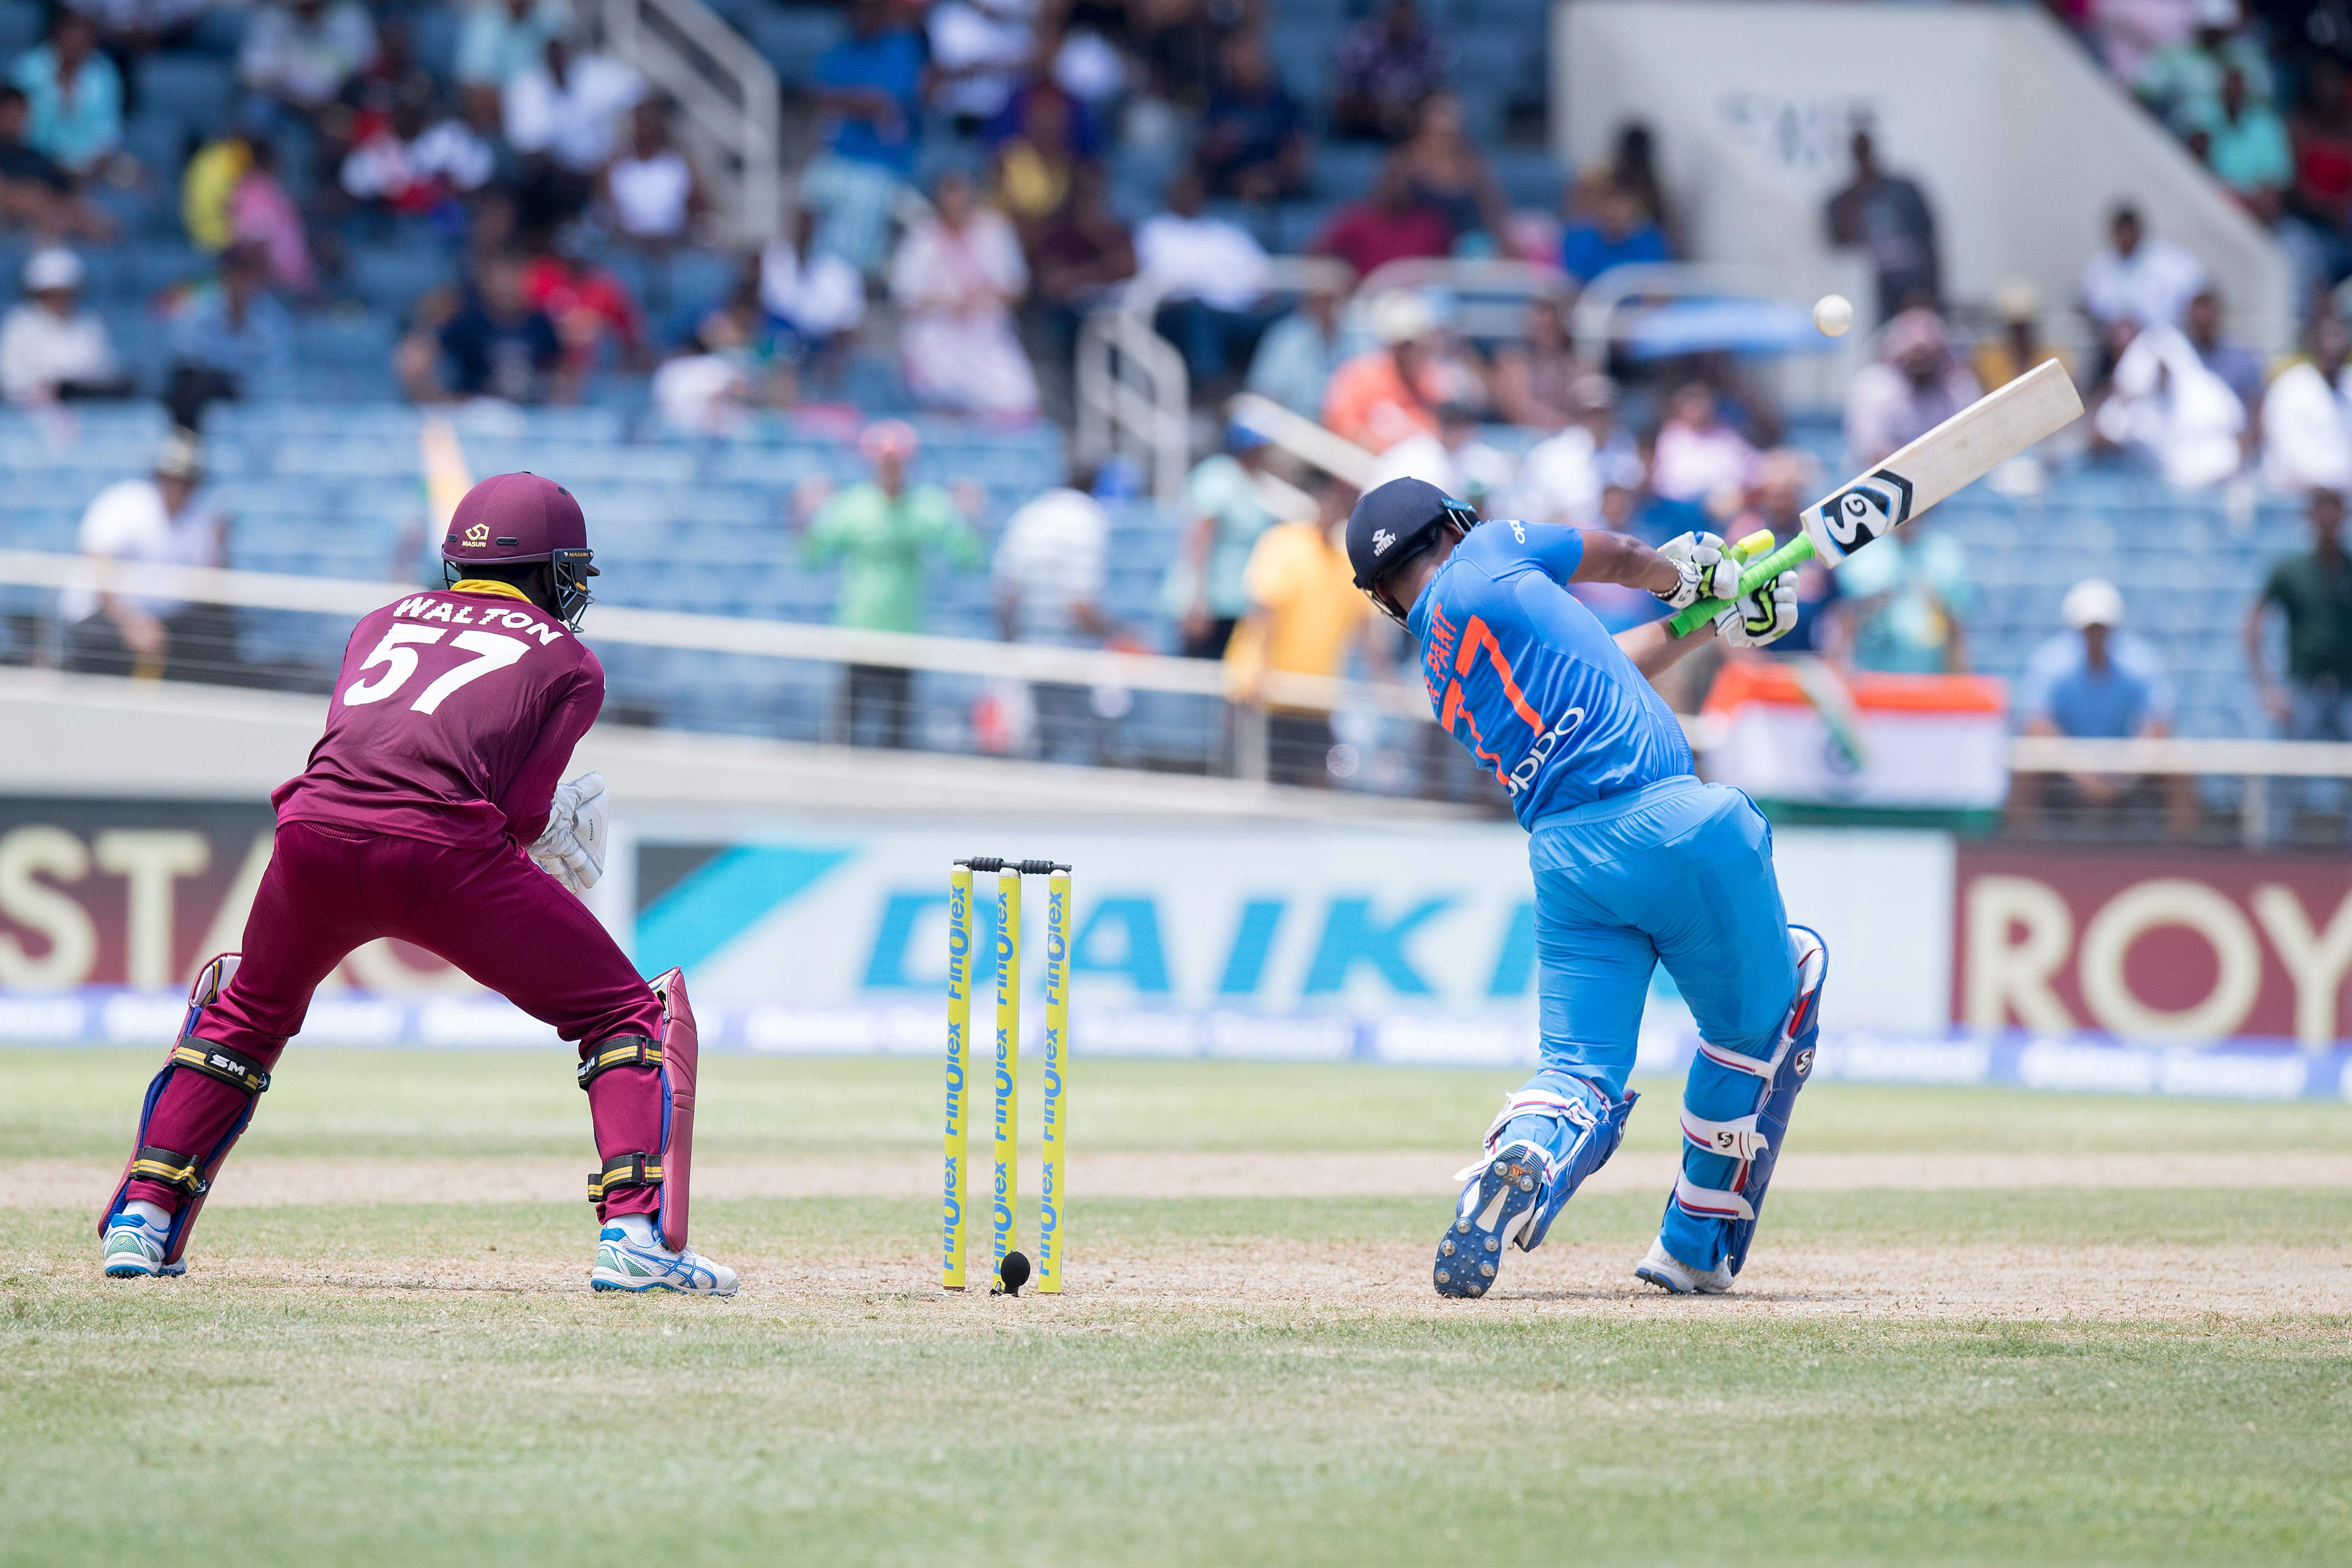 India vs West Indies T20 cricket